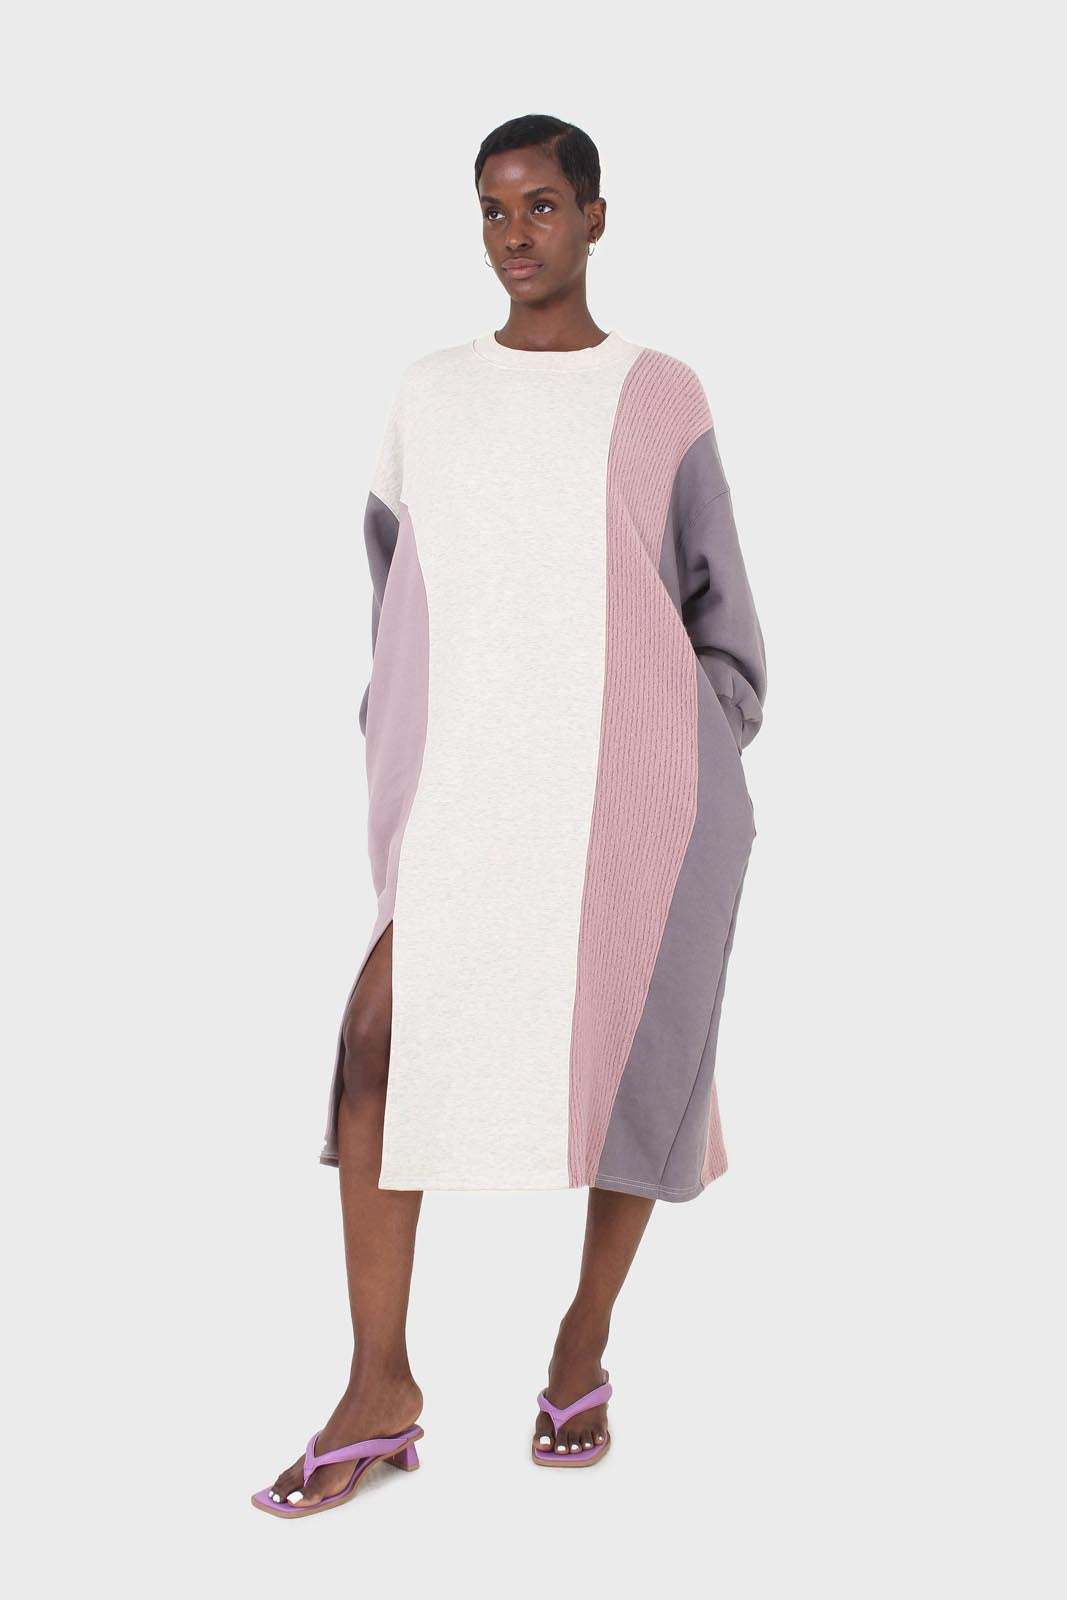 Grey and pink color block sweatshirt dress2